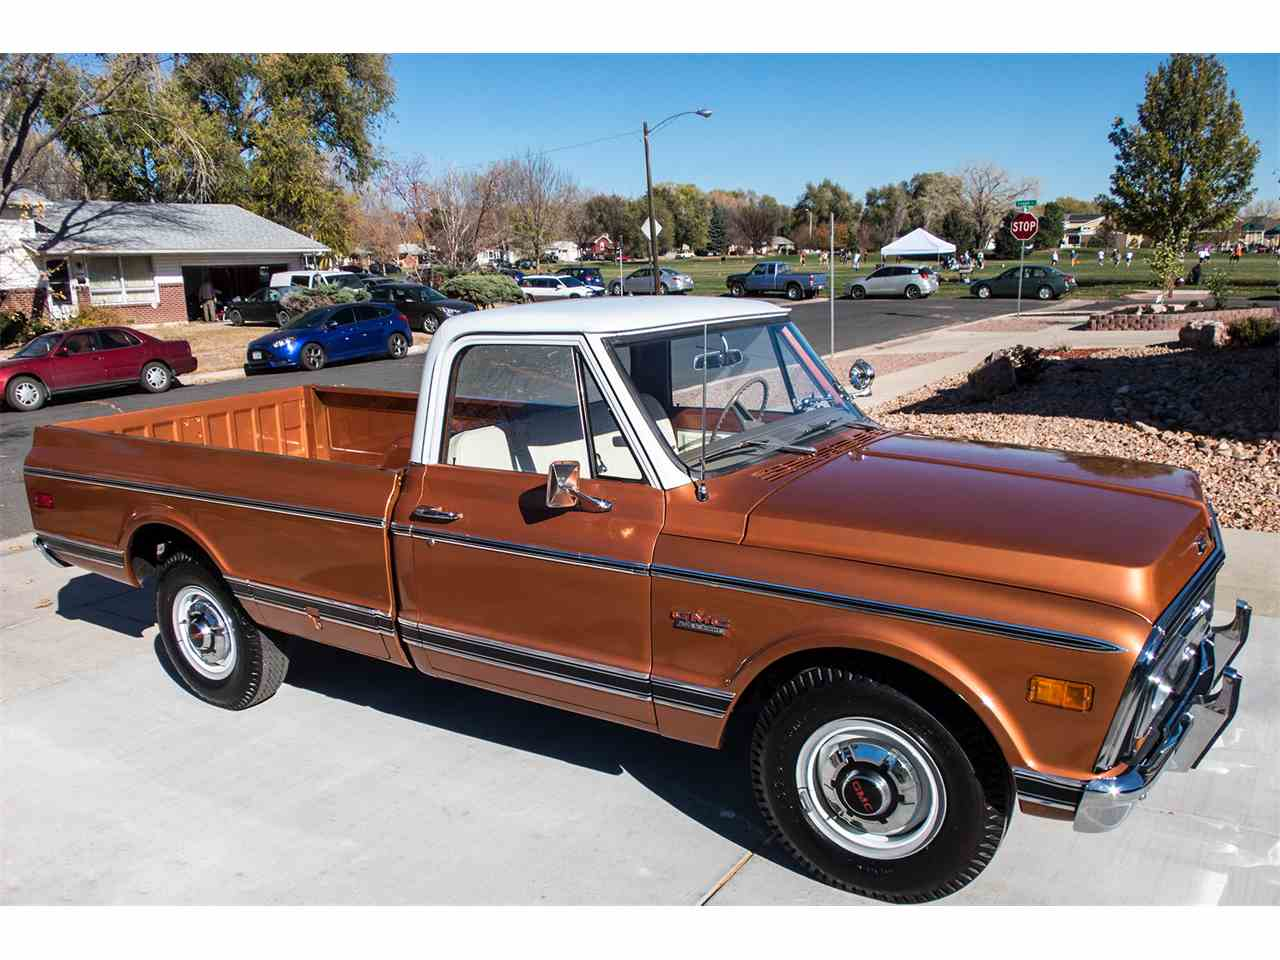 1969 Chevy Truck For Sale >> 1971 GMC Pickup for Sale | ClassicCars.com | CC-978388